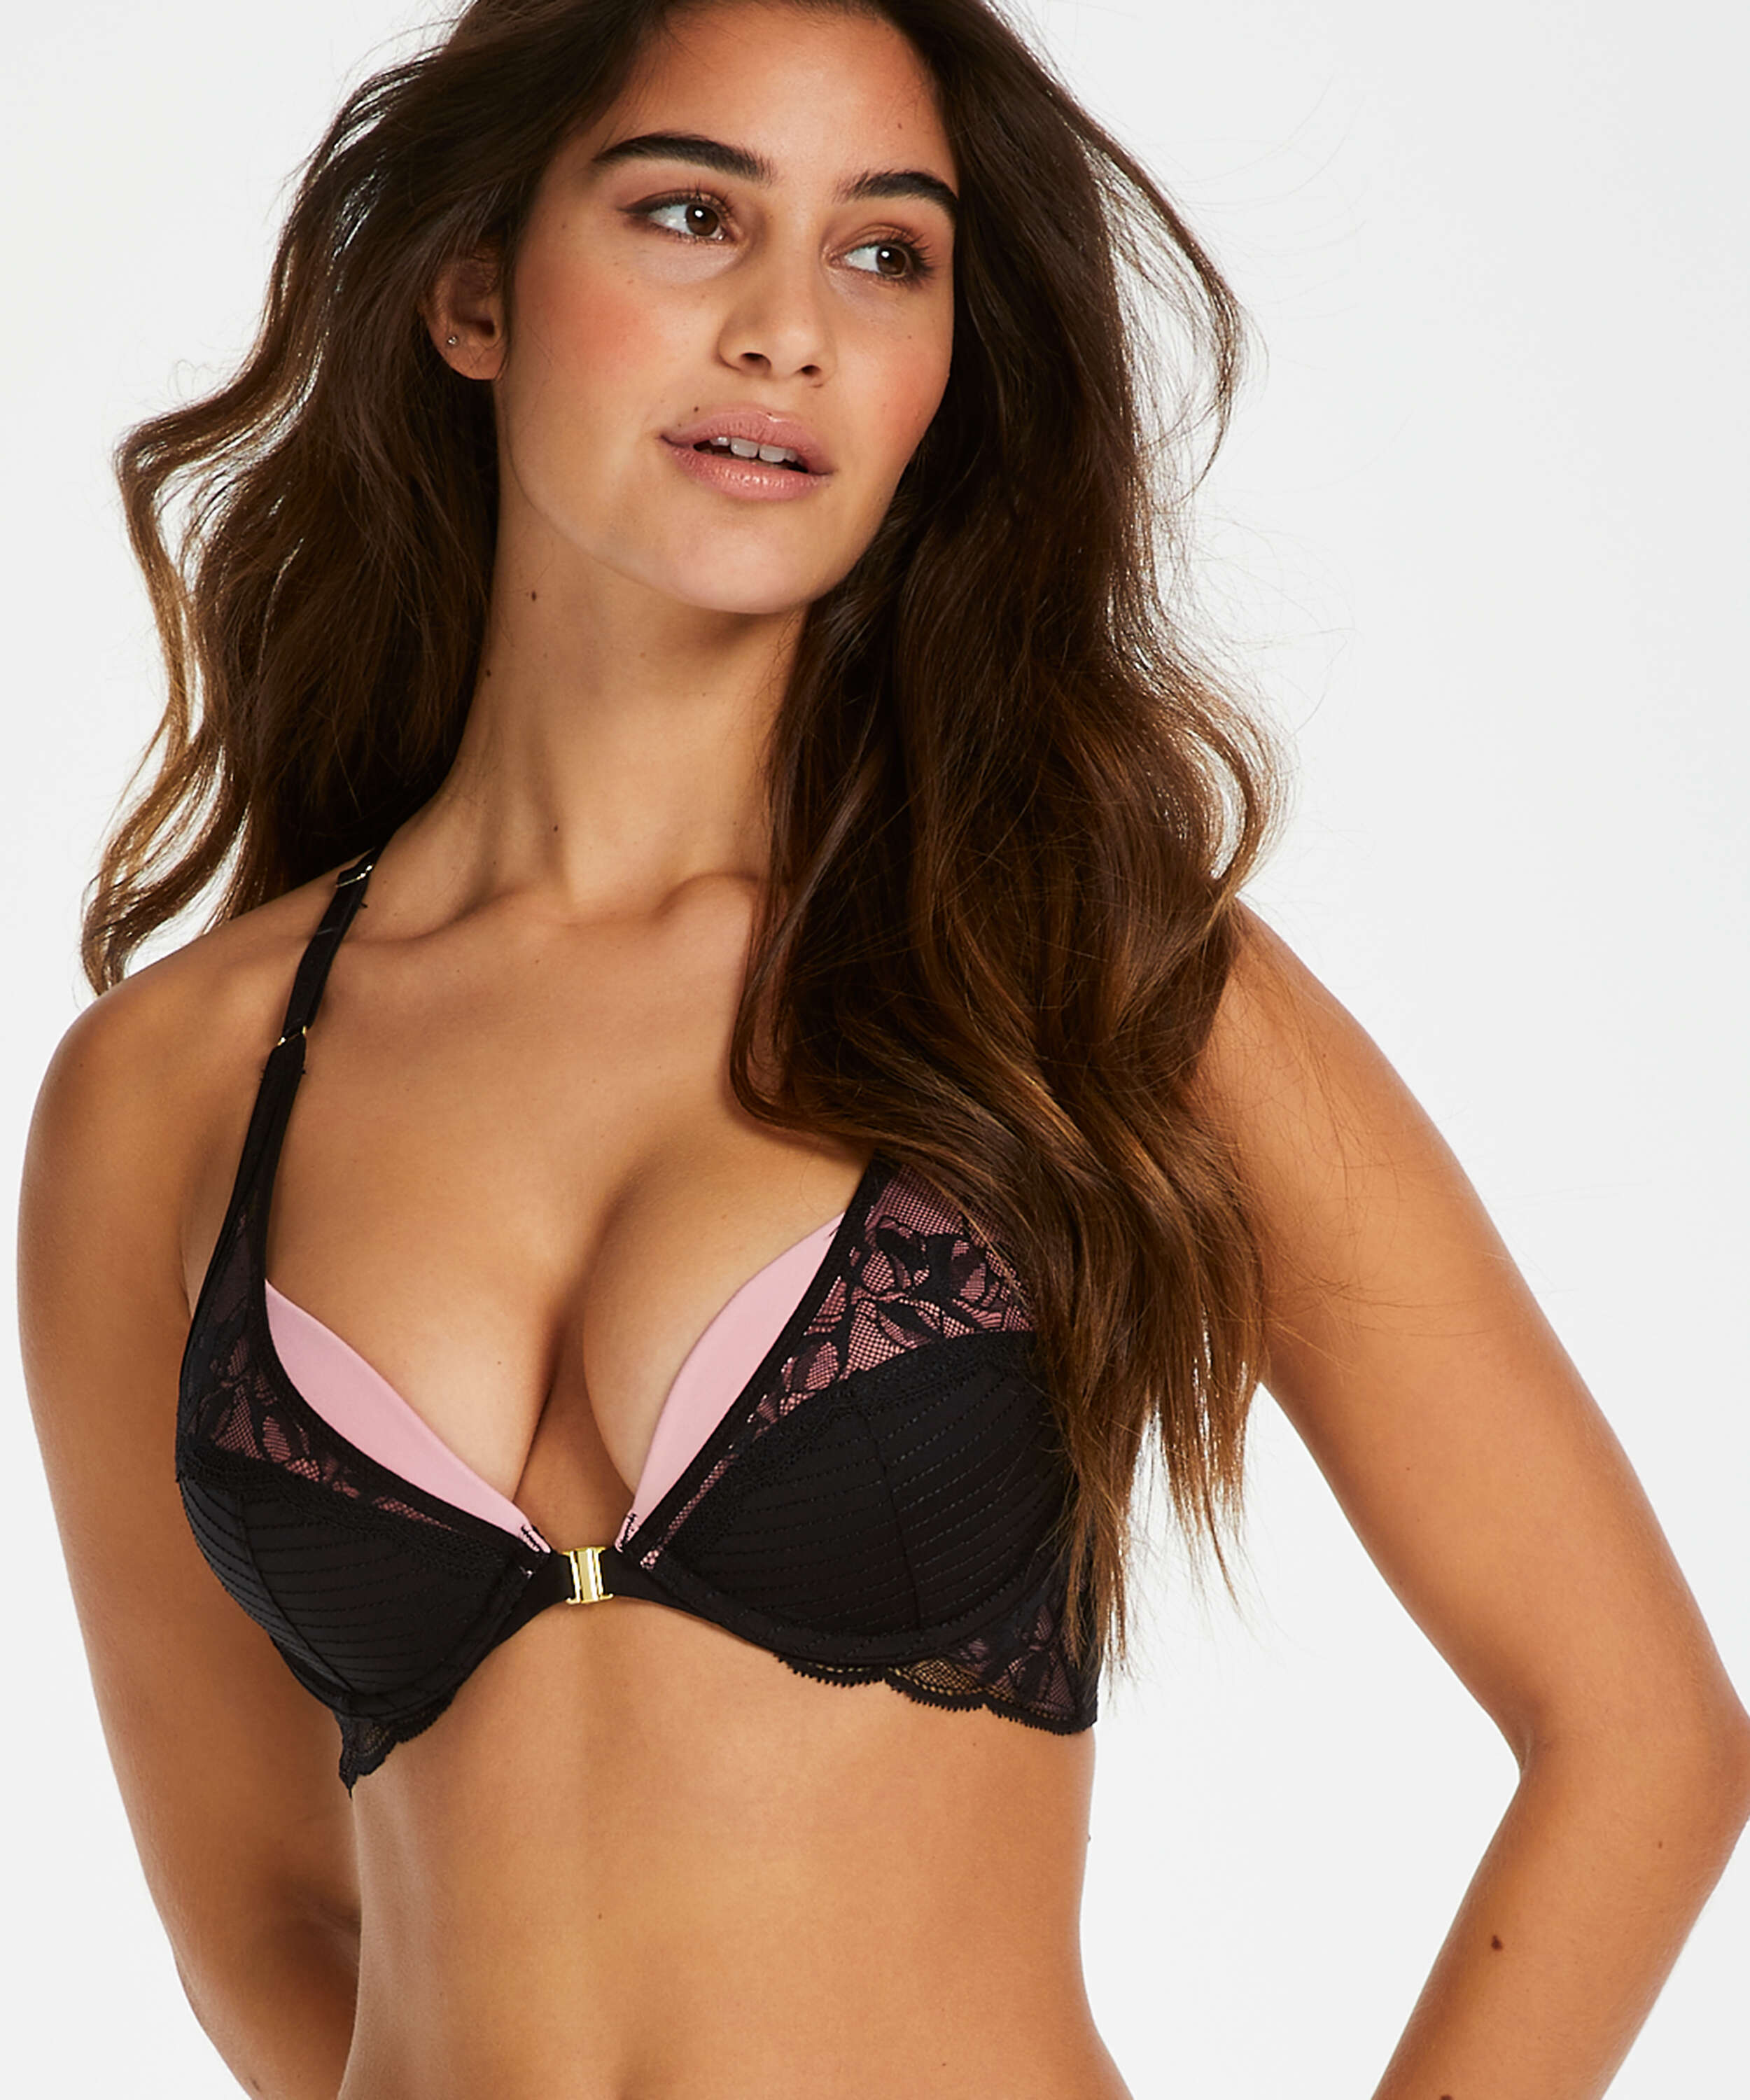 Marit Padded Push-Up Underwired Bra, Black, main